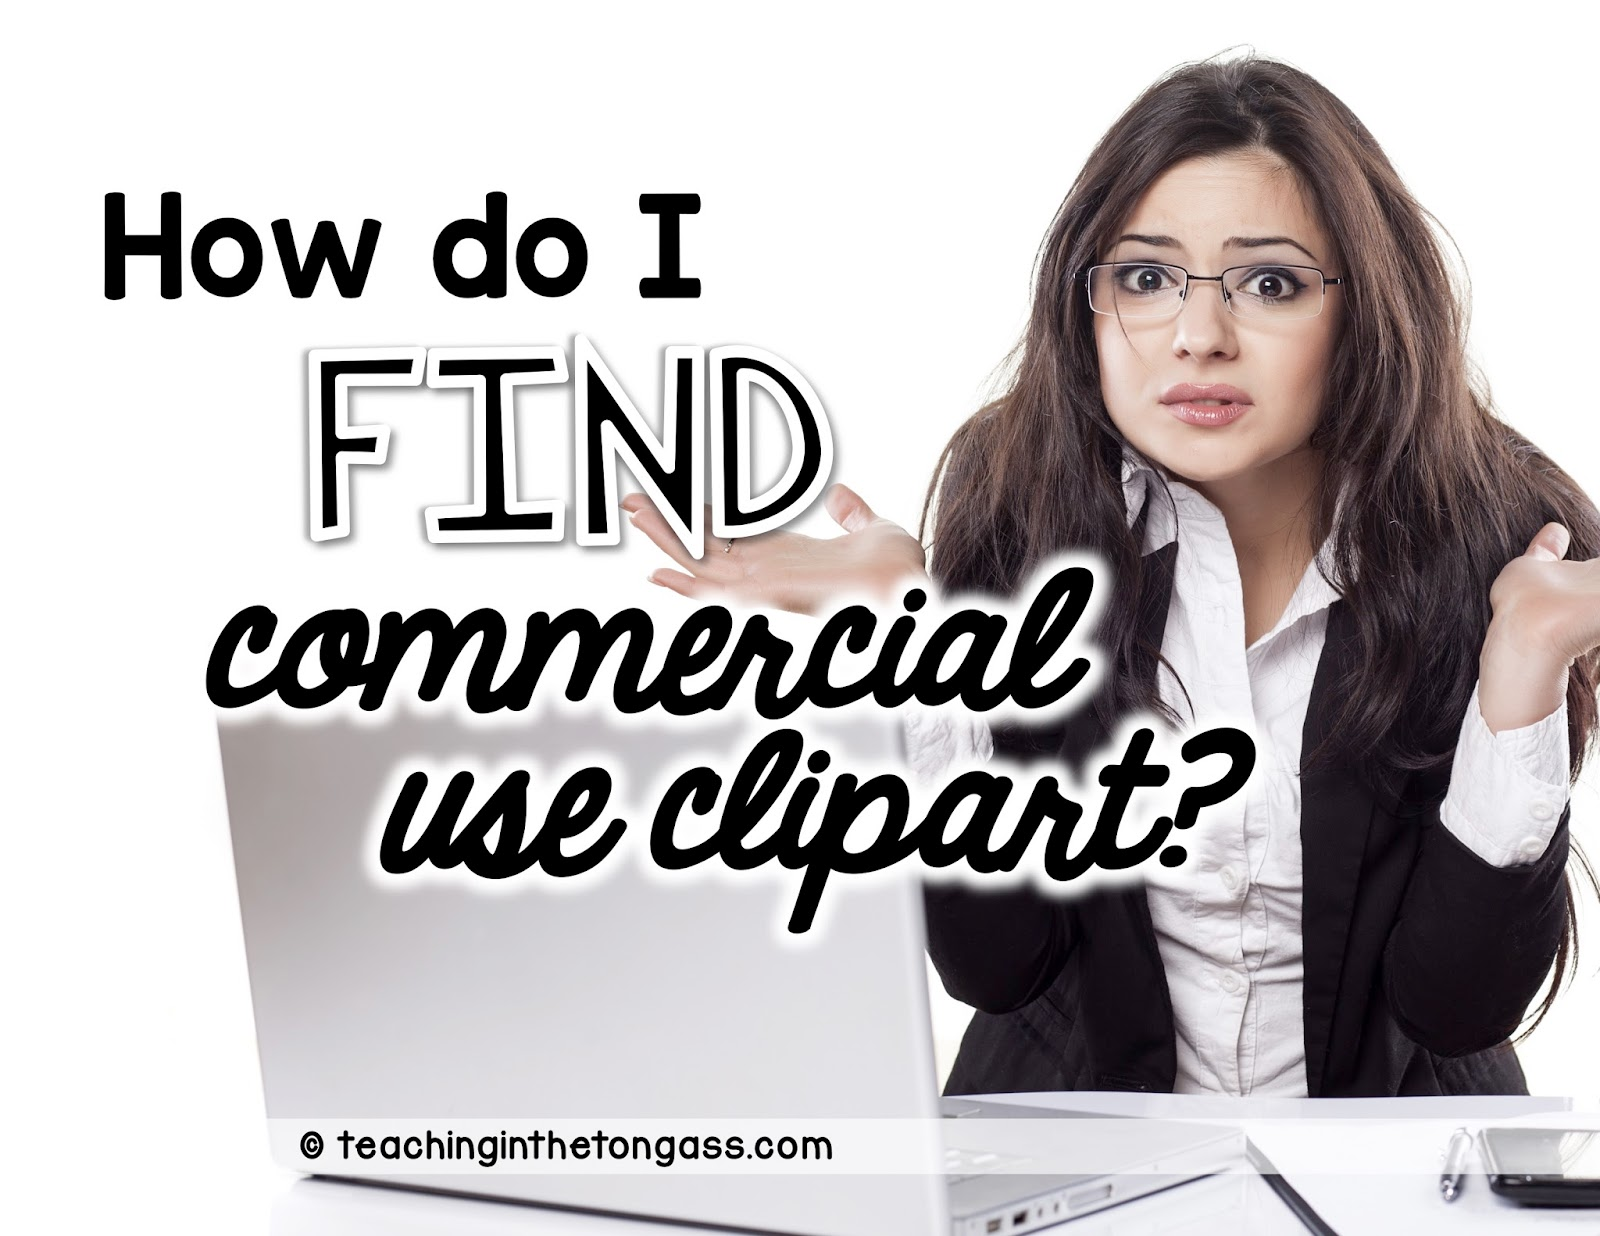 Free Clipart Images For Commercial Use & Clip Art Images.